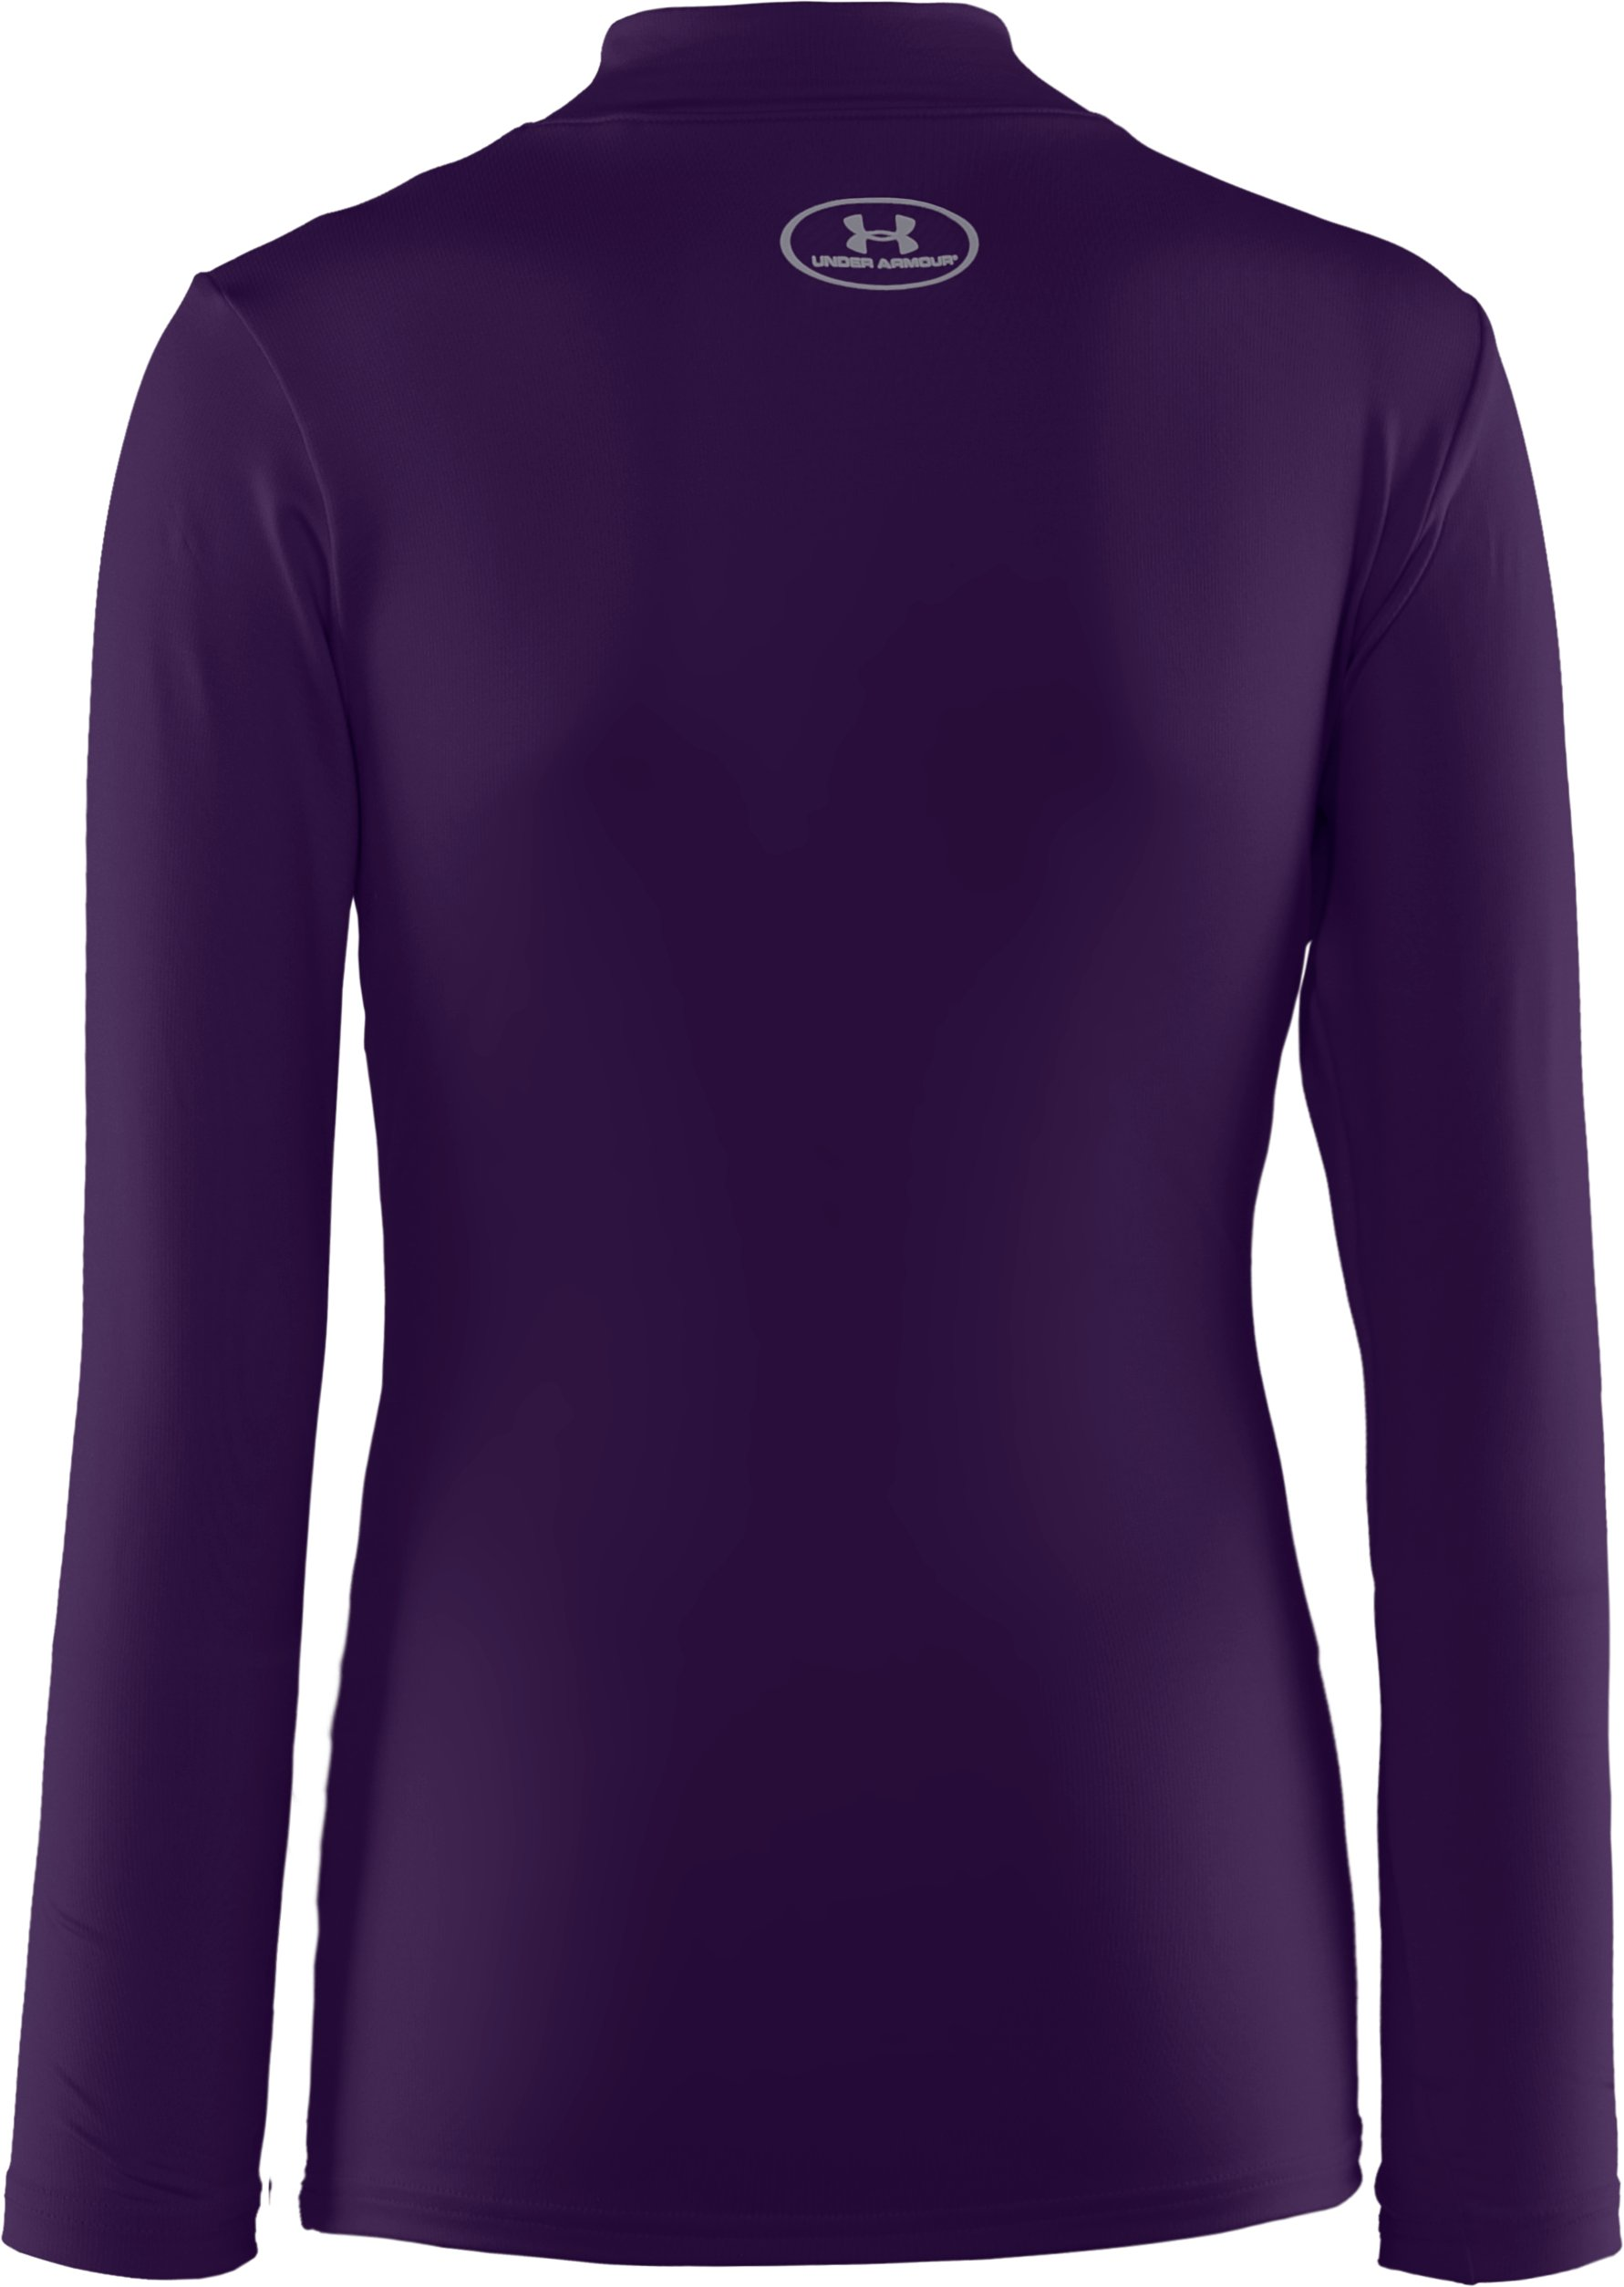 Boys' ColdGear® Evo Fitted Baselayer Mock, Purple